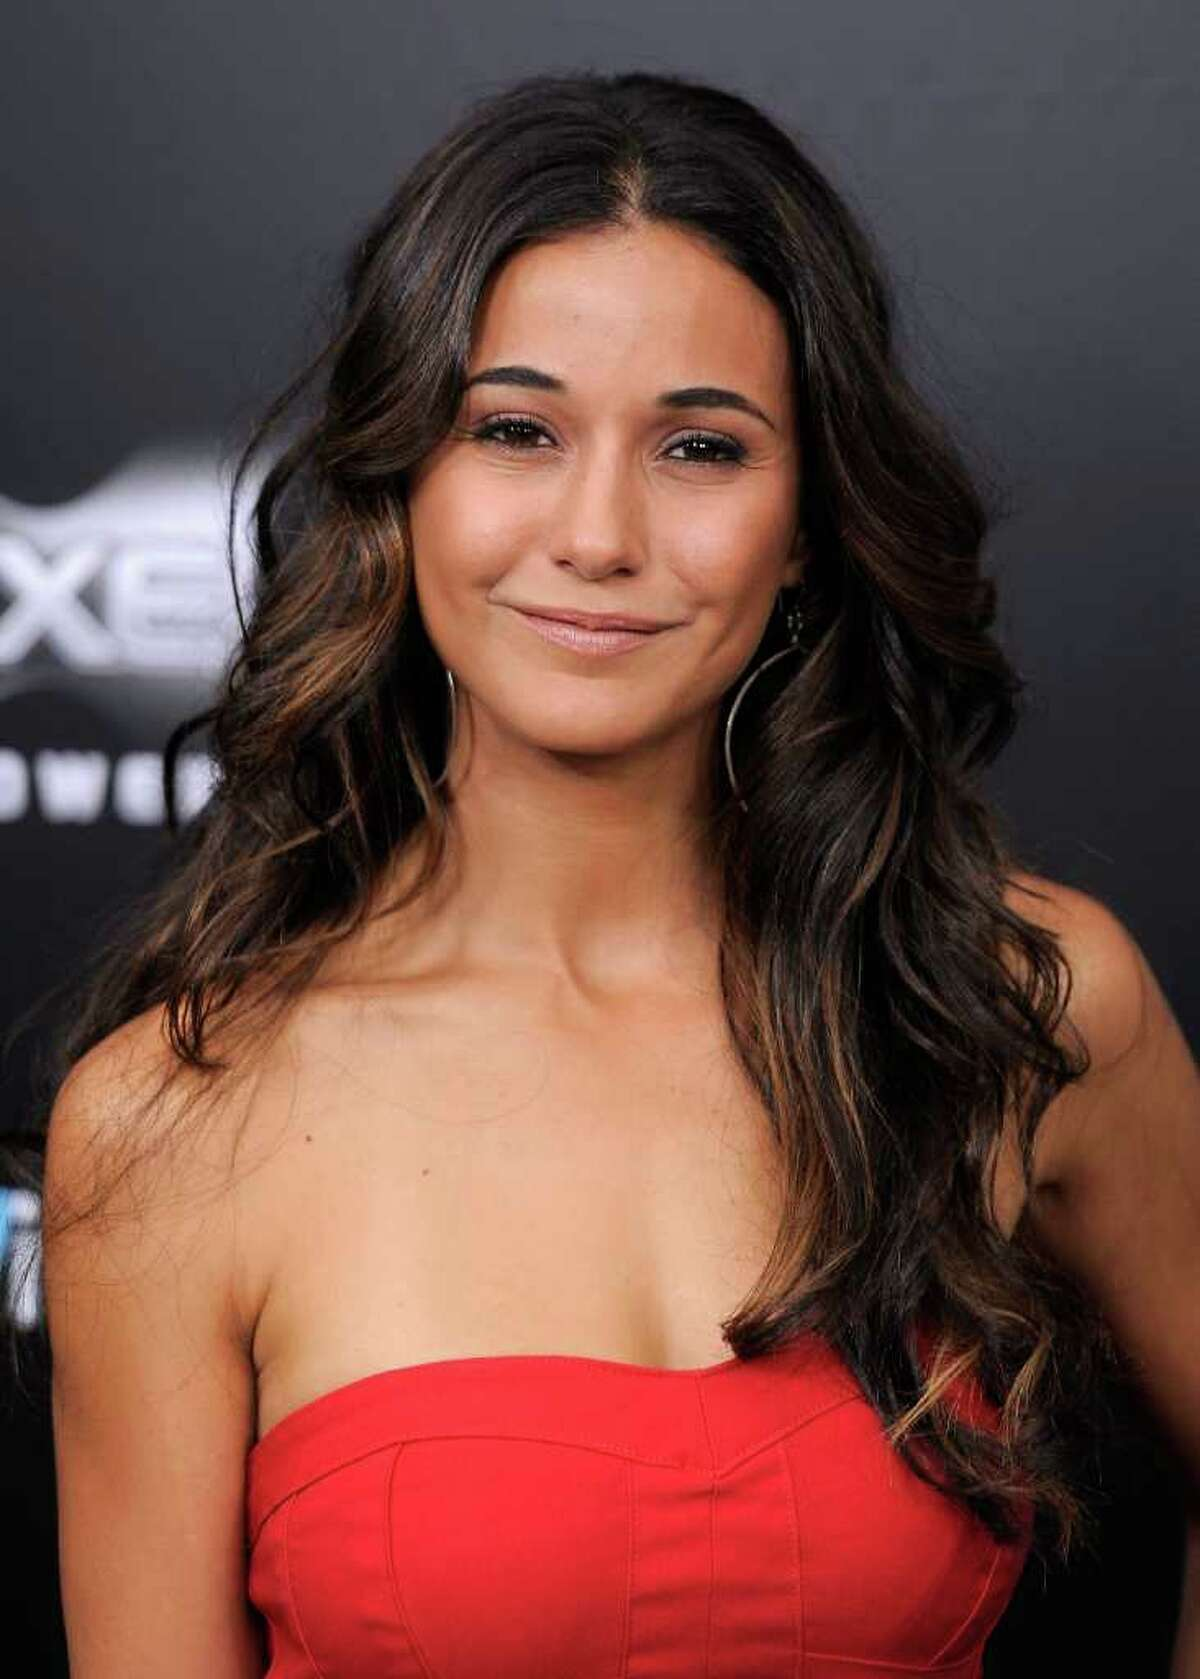 NEW YORK, NY - JULY 18: Actress Emmanuelle Chriqui attends the